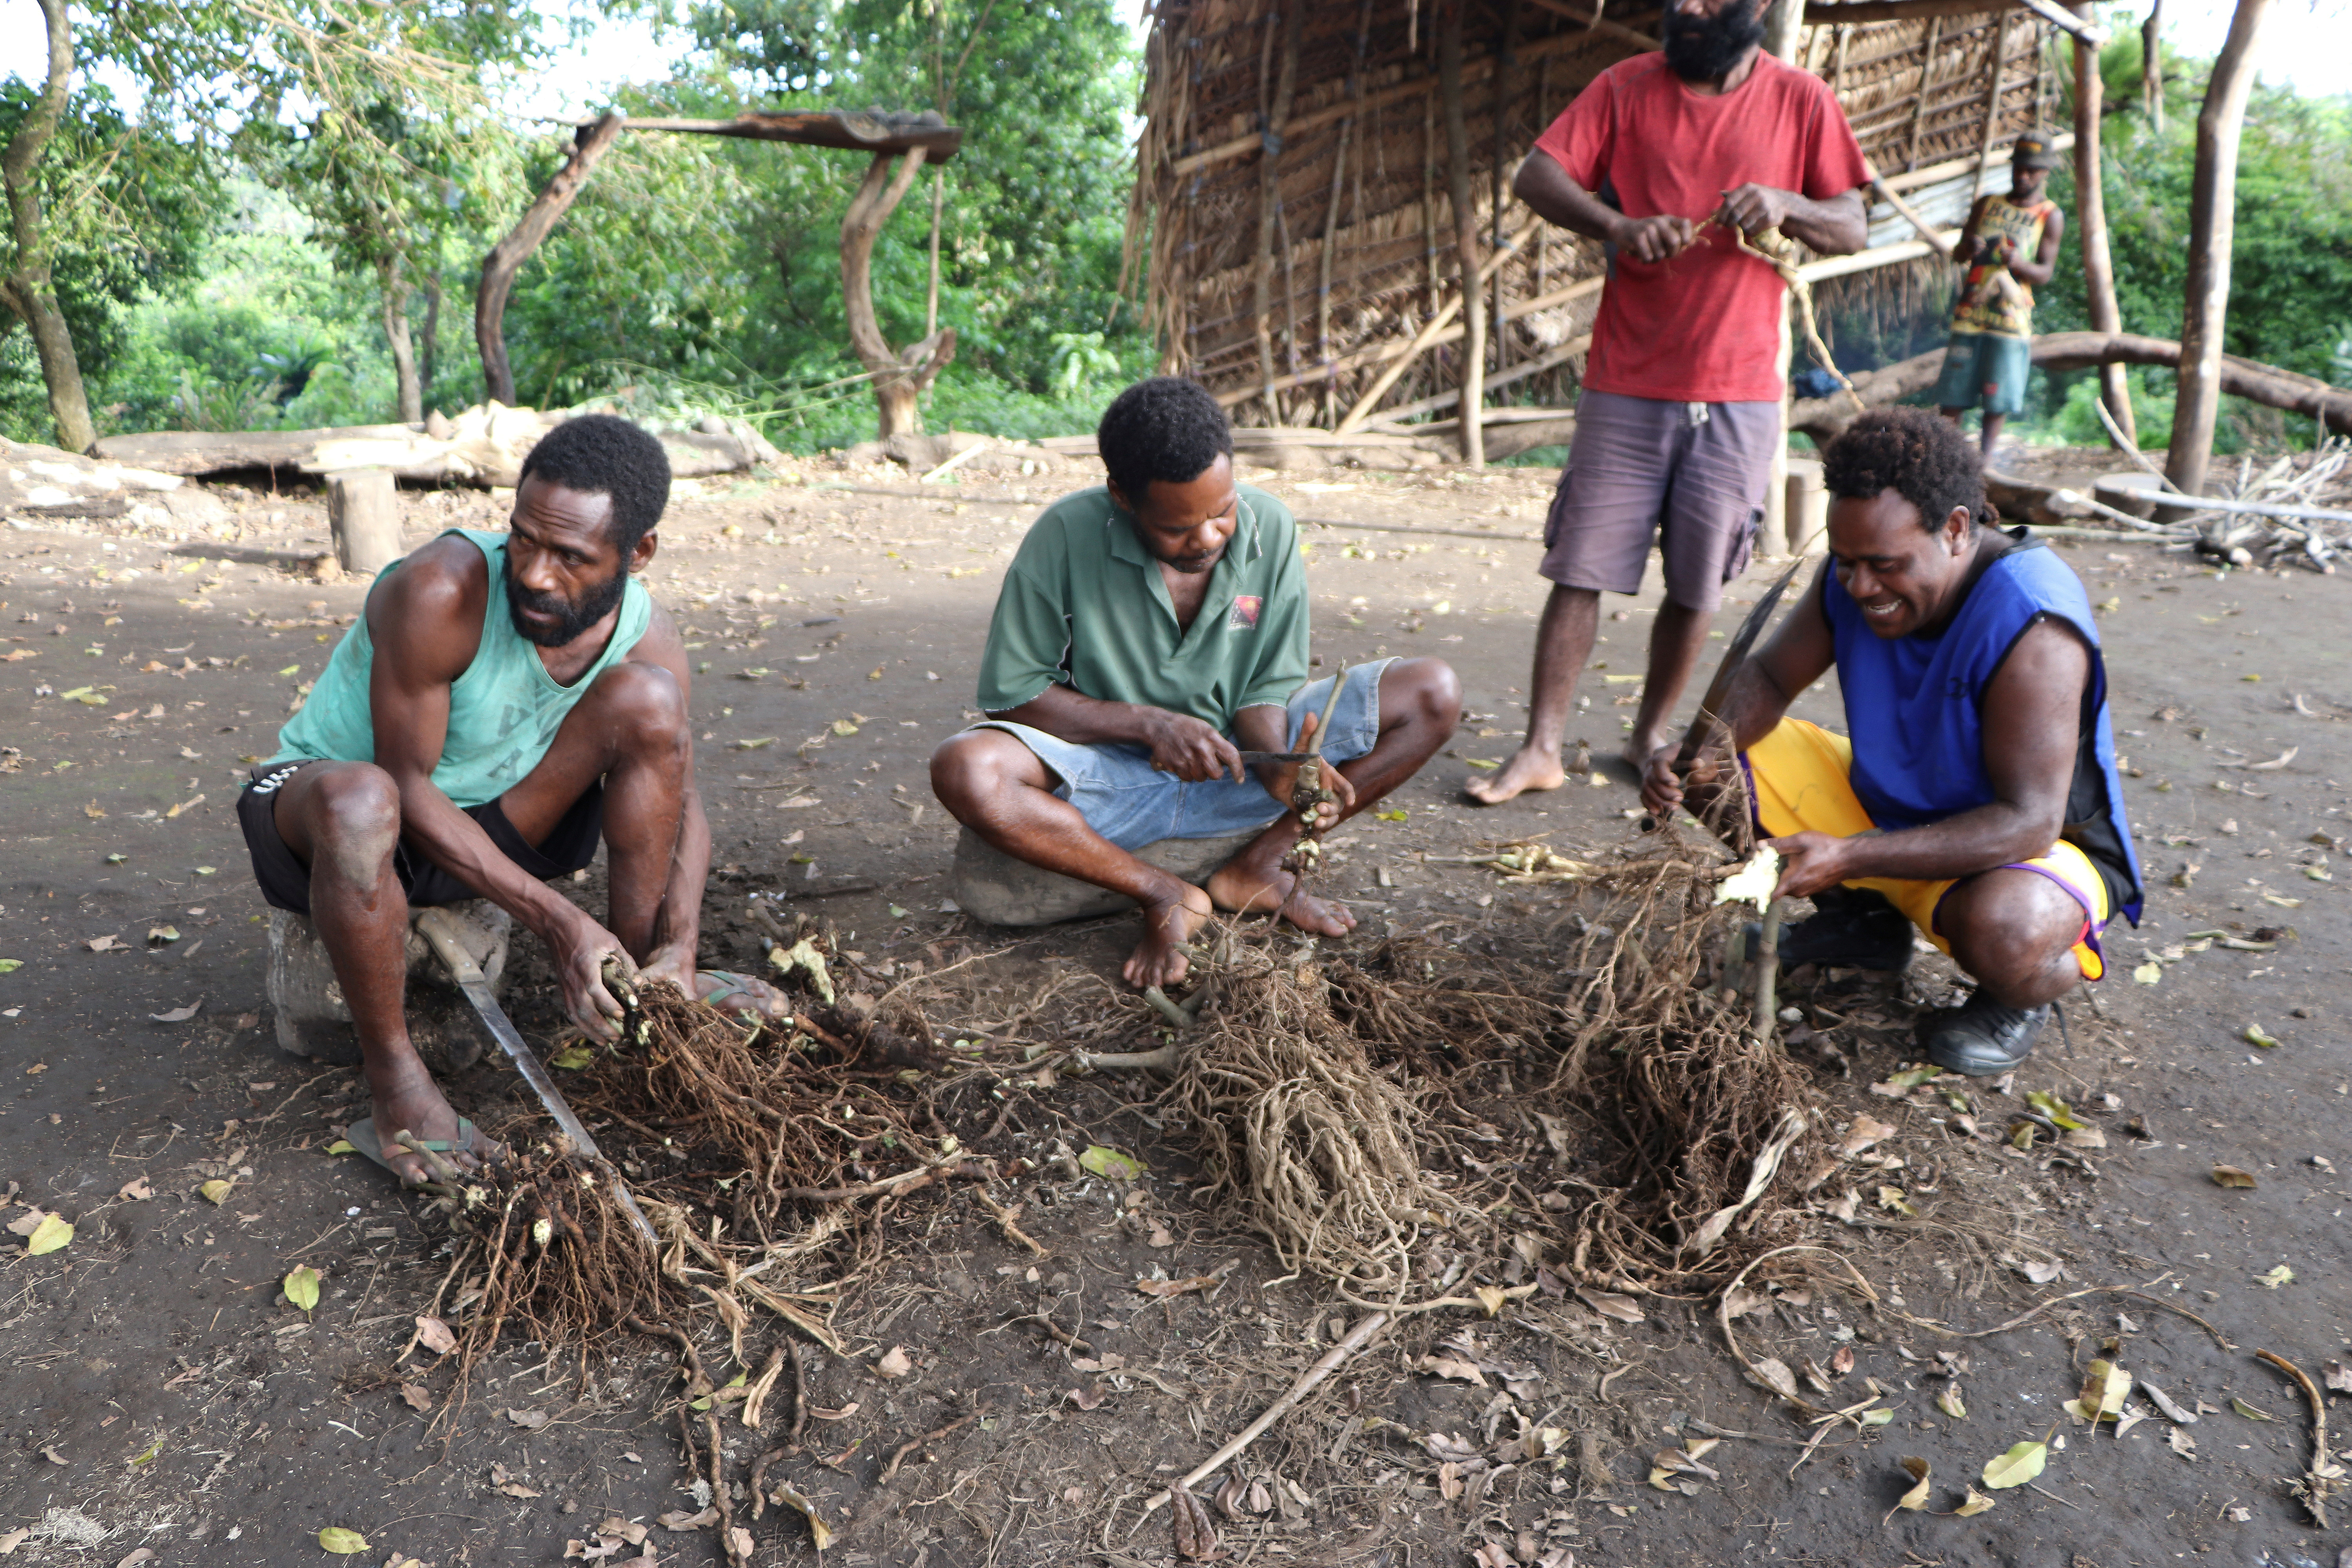 Prince Philip devotees prepare kava roots to be drunk at an upcoming mourning ceremony to take place for the late British prince who passed away Friday at age 99, in Younanen village, Tanna island, Vanuatu April 10, 2021. REUTERS/Jean-Pascal Wahe